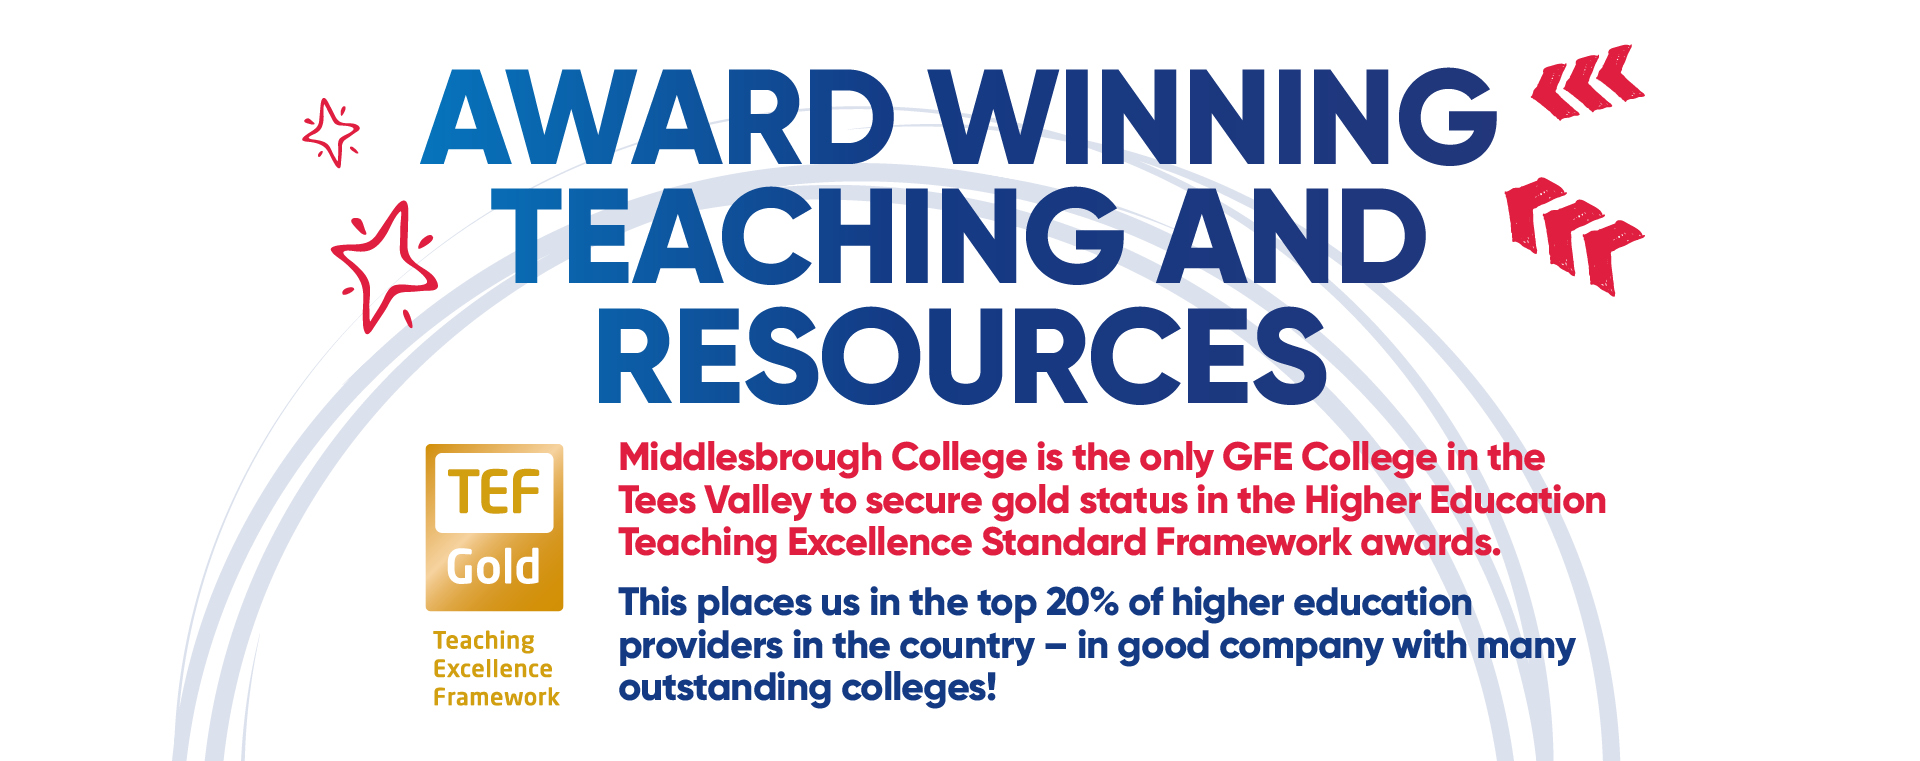 Middlesbrough College TEF Gold